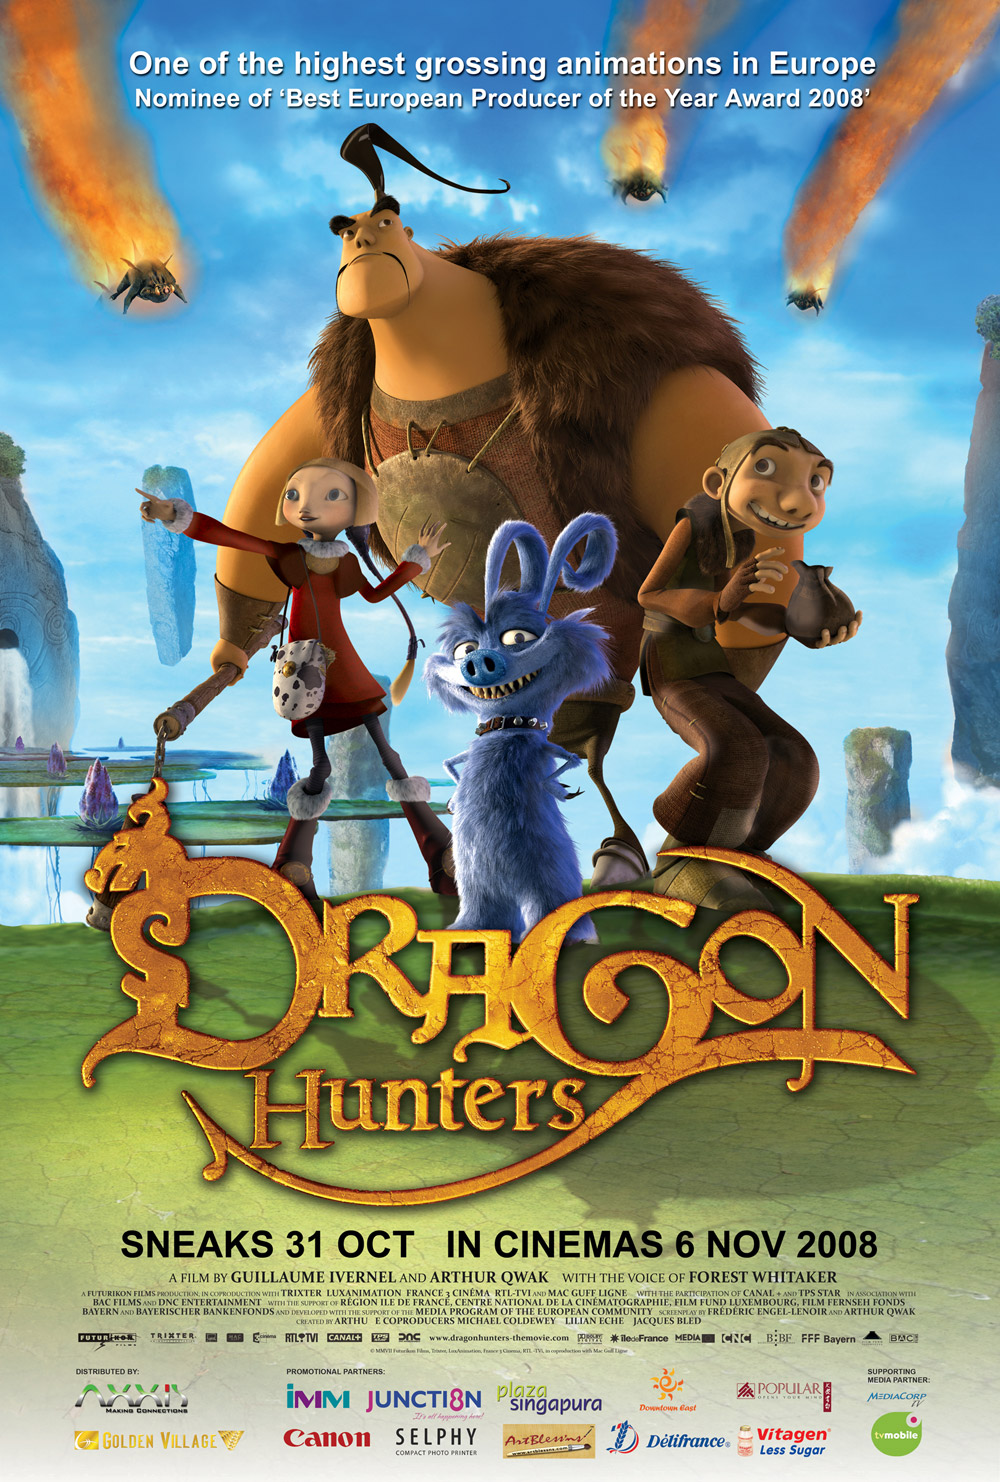 Dragon hunter 2008 movie